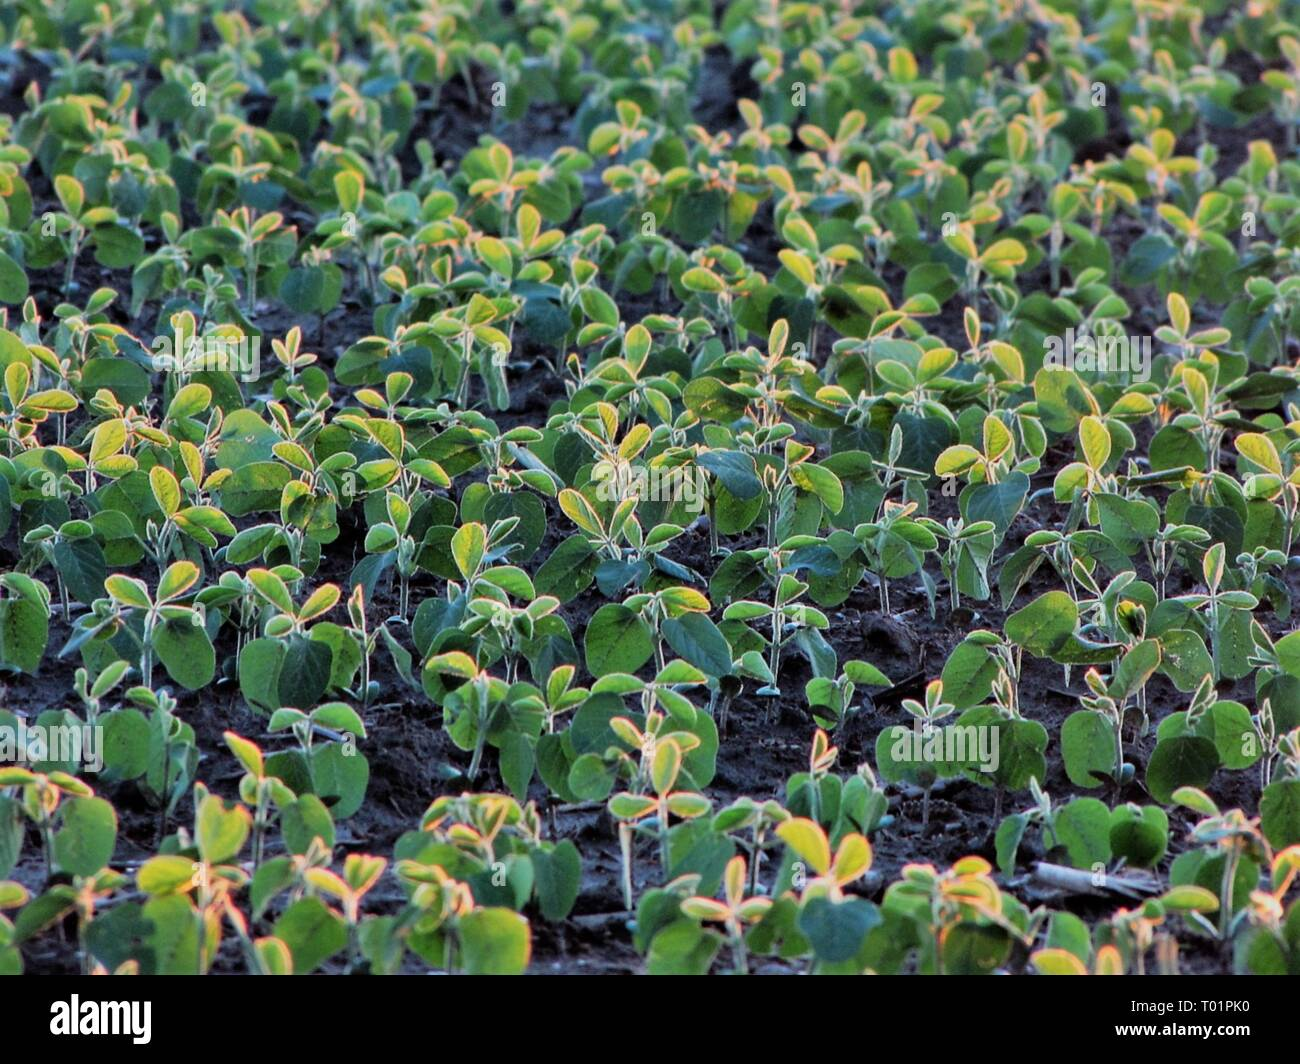 Closeup of young soybean plants in early summer field - Stock Image